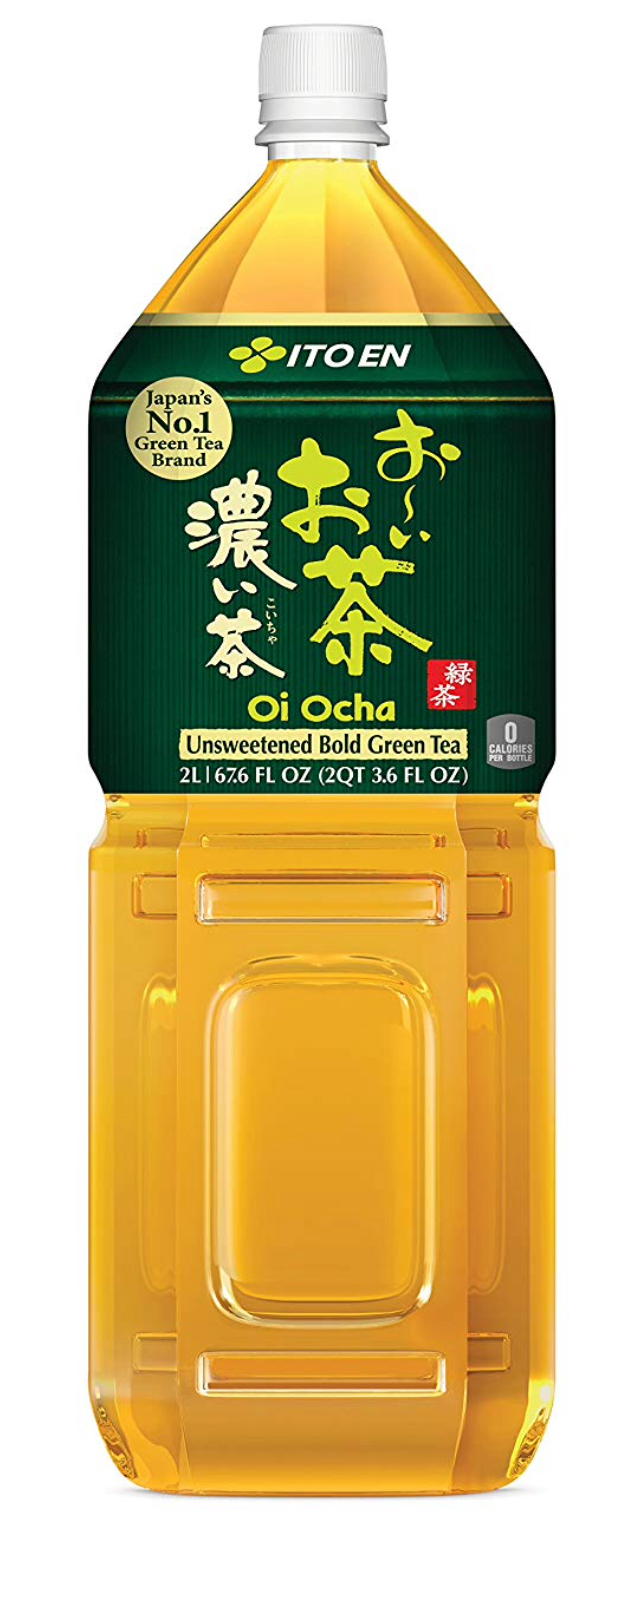 Ito En Oi Ocha - Flashing back as a 16-year-old AFS exchange student in Sendai, Japan, my love for tea grew with earthy Genmaicha, which accompanied every meal. When Ito-En opened its elegant store on Madison Avenue in 2001, this was a game-changer: delicious, perfectly balanced organic brews in handy gallon-sized bottles. That said, it's a guilty pleasure as I'm obsessing about the world's plastic problem.Other great green Ito-En selections include mint, jasmine and white. Each serving packs a day's recommended Vitamin C.